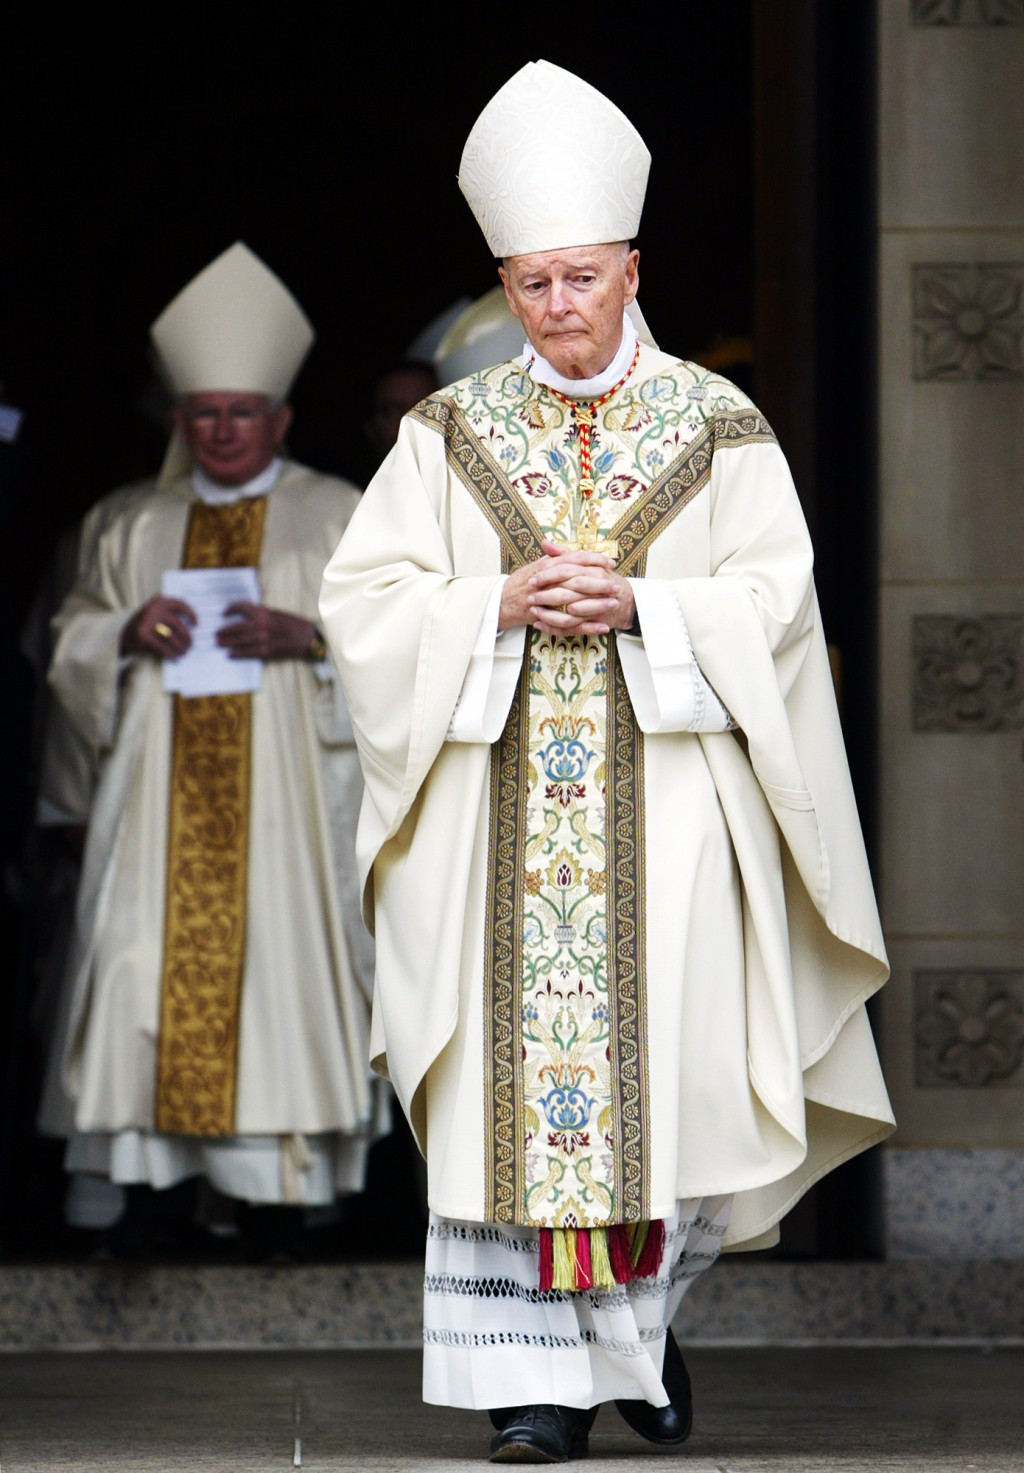 FILE - In this Oct. 30, 2004 file photo, Cardinal Theodore E. McCarrick, leads a procession of priests, bishops and cardinals after a Mass of Christia...